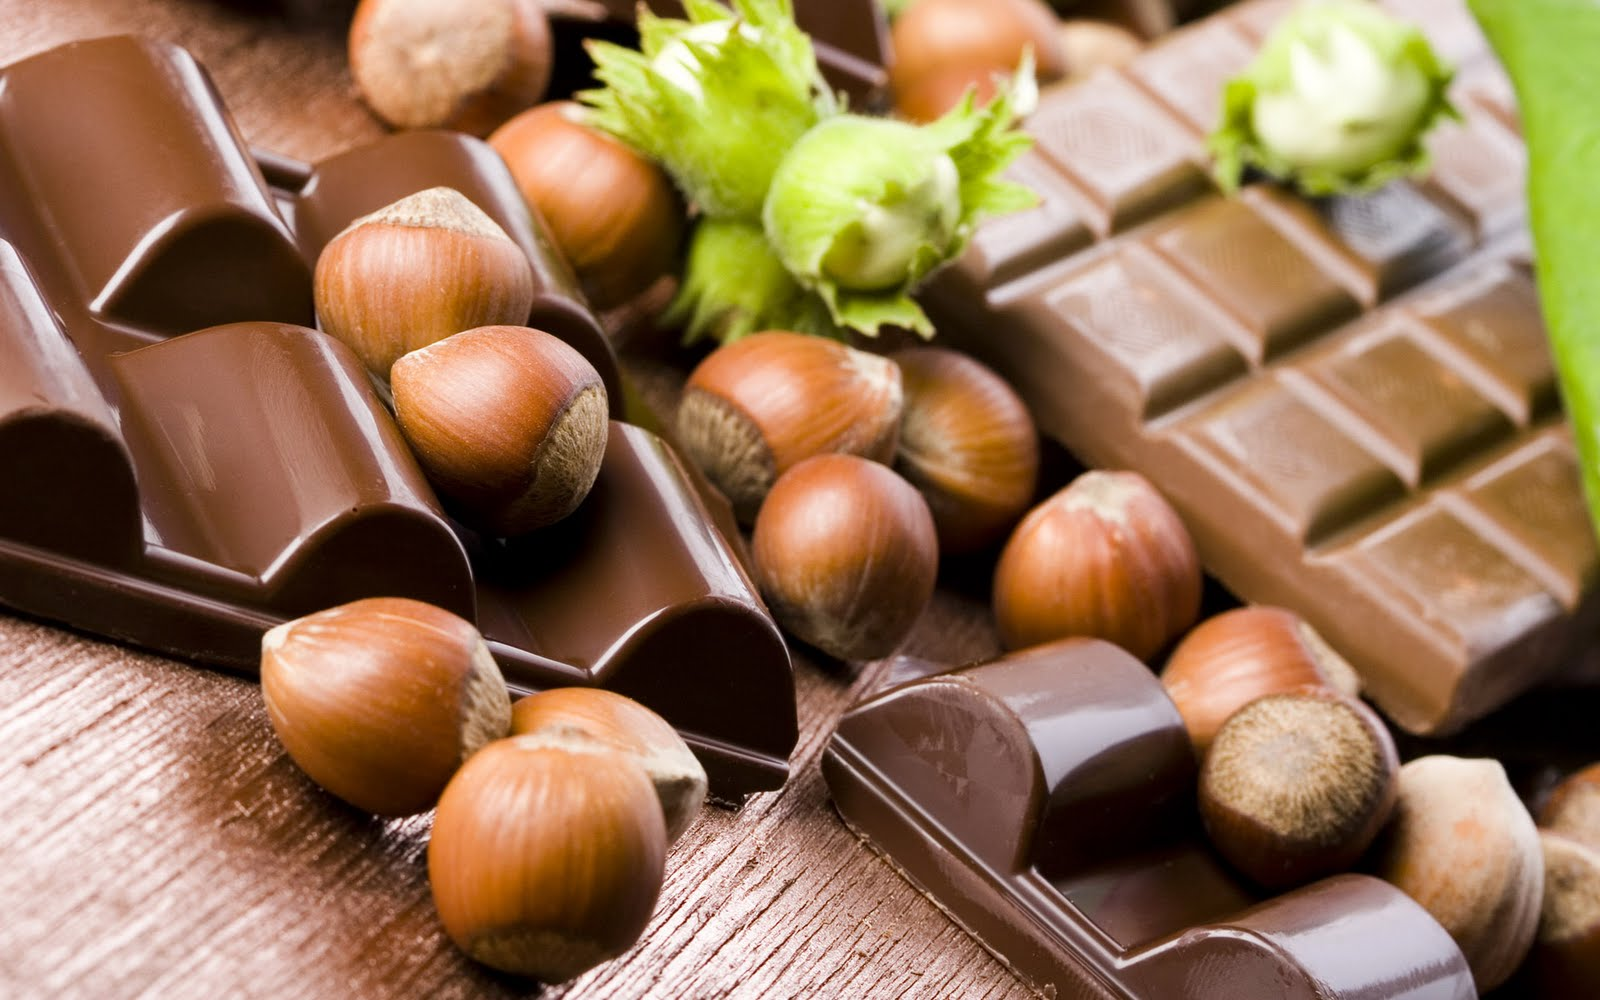 Free love quotes chocolate hd wallpapers set 1 chocolate hd wallpapers set 1 thecheapjerseys Choice Image